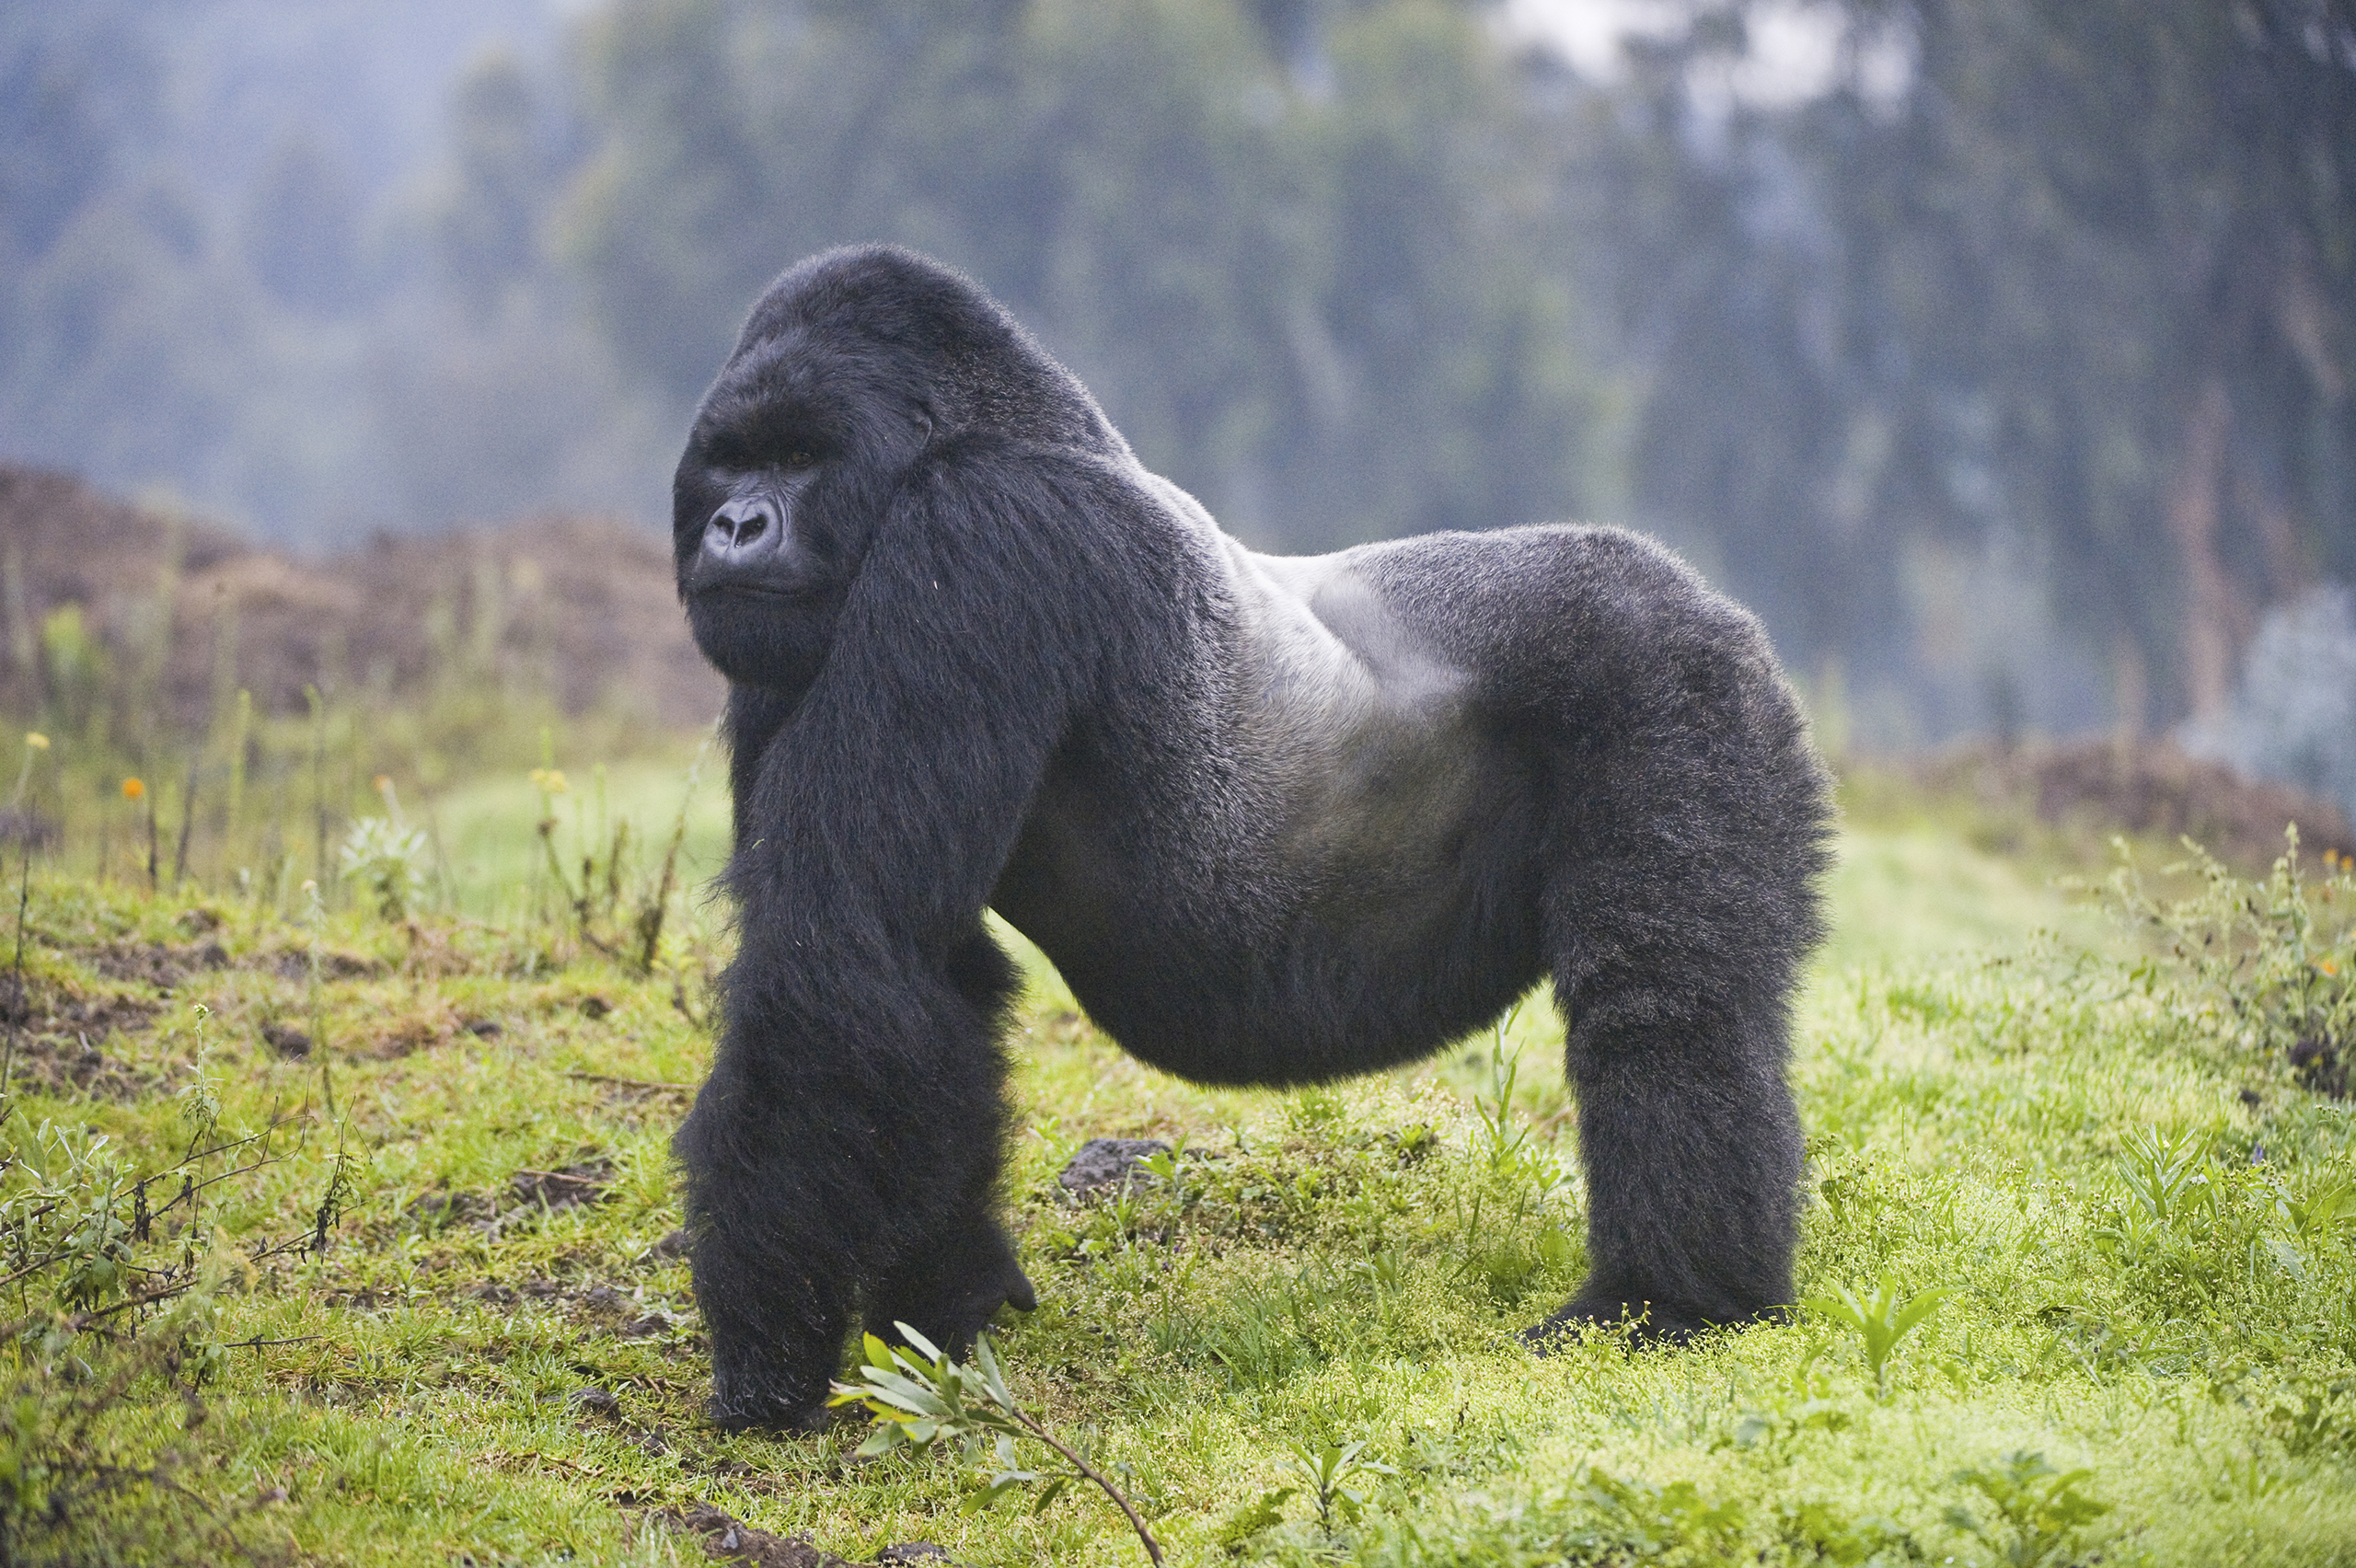 Mountain Gorilla, Rwanda.   About 880 mountain gorillas, who have thicker and more fur than other great apes, live in forests high in the mountains in the Congo Basin. They are threatened by civil conflict, poaching, and an encroaching human population.